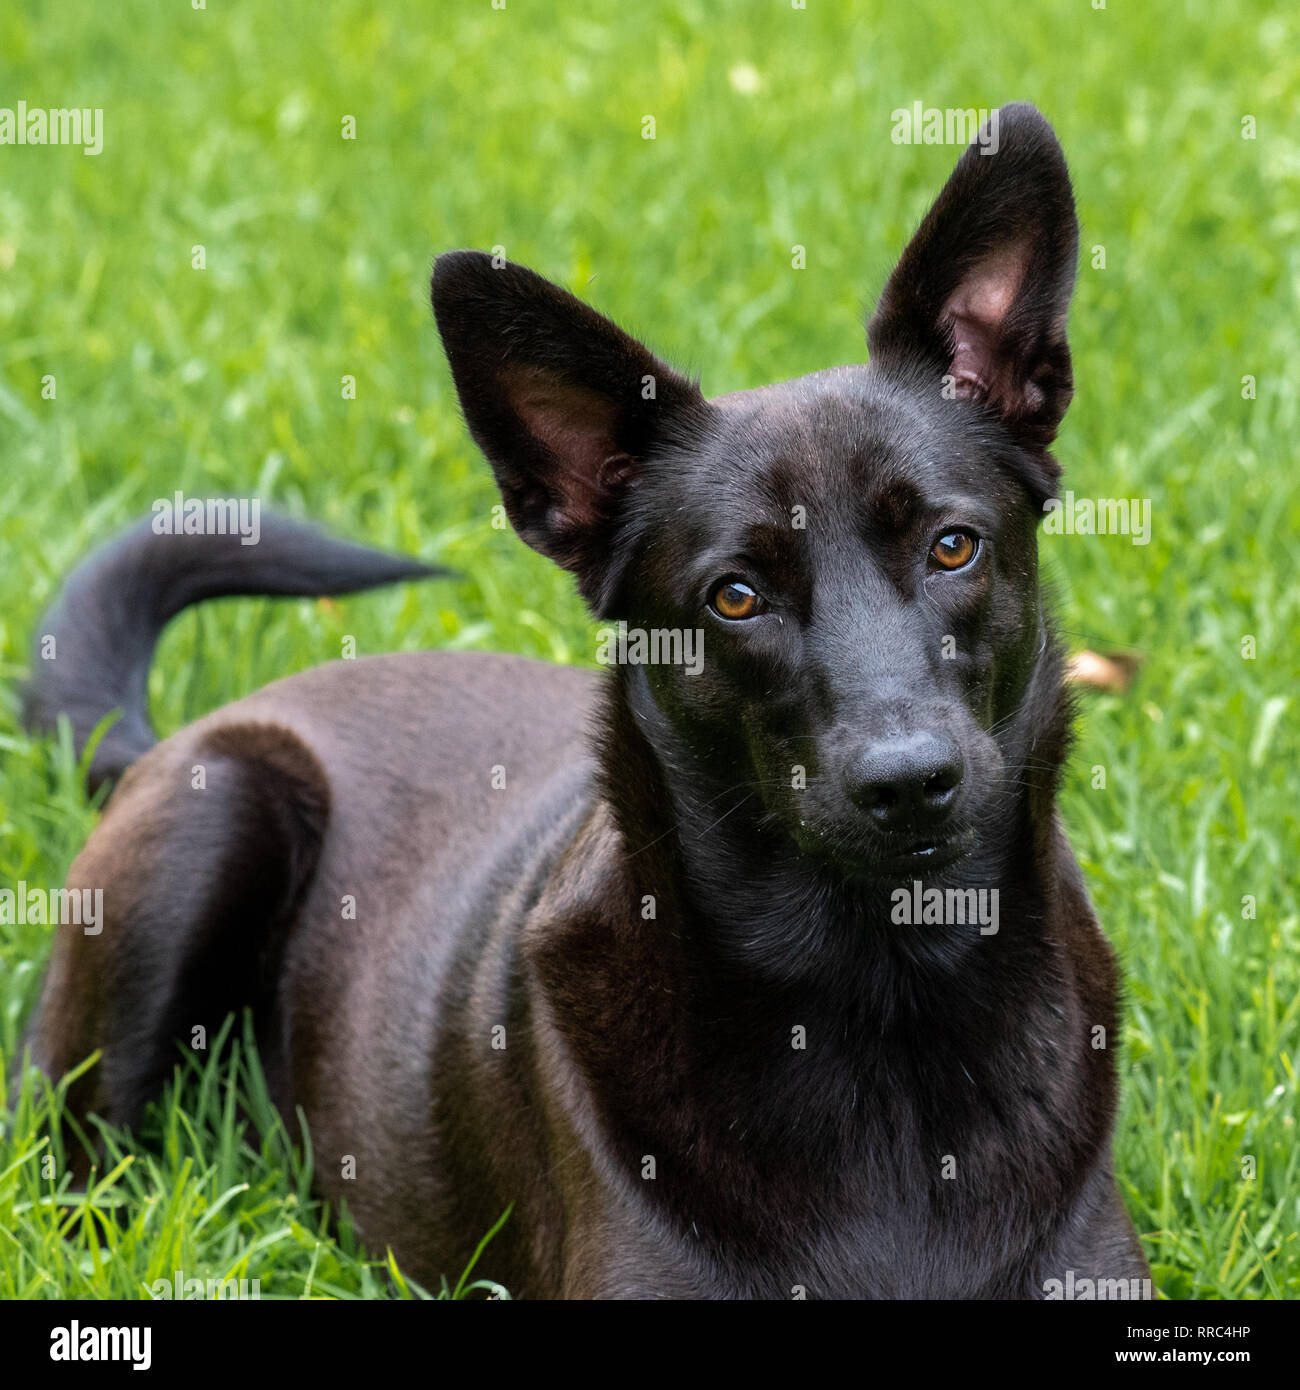 A portrait of a x-breed dog, rescued as a puppy. - Stock Image